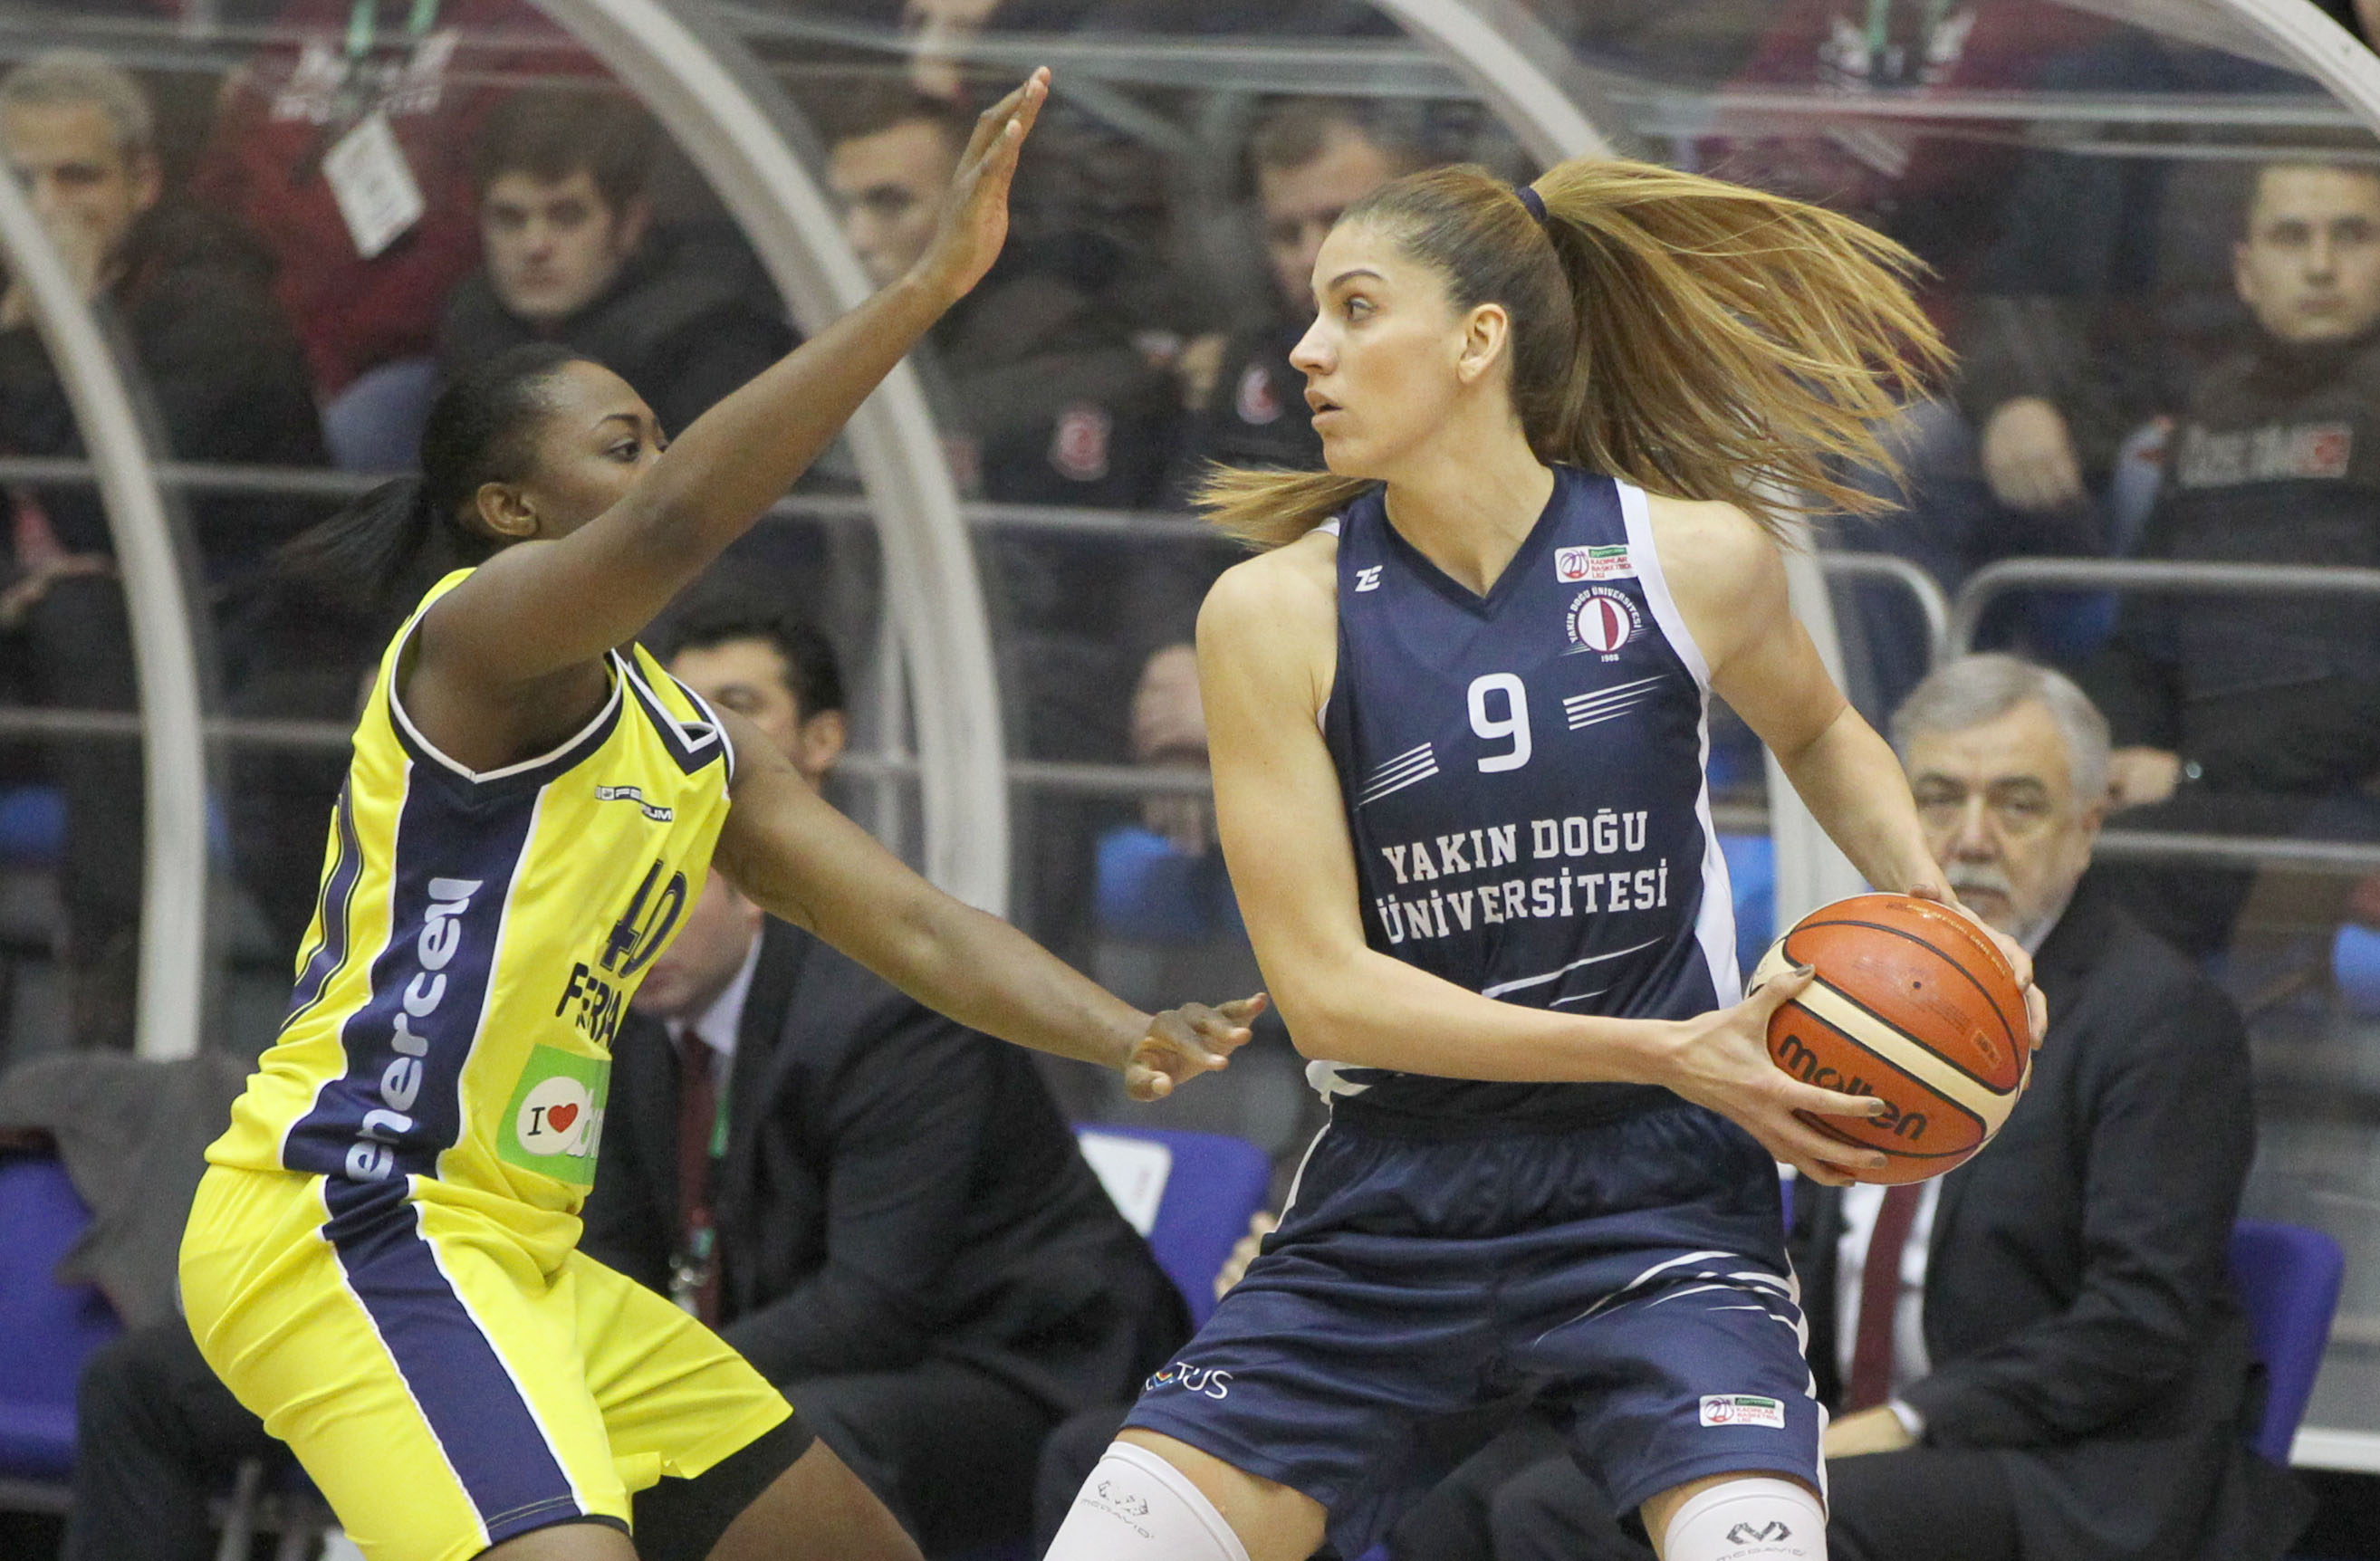 Near East University has left it to the final match … Fenerbahçe: 76 – Near East University: 64